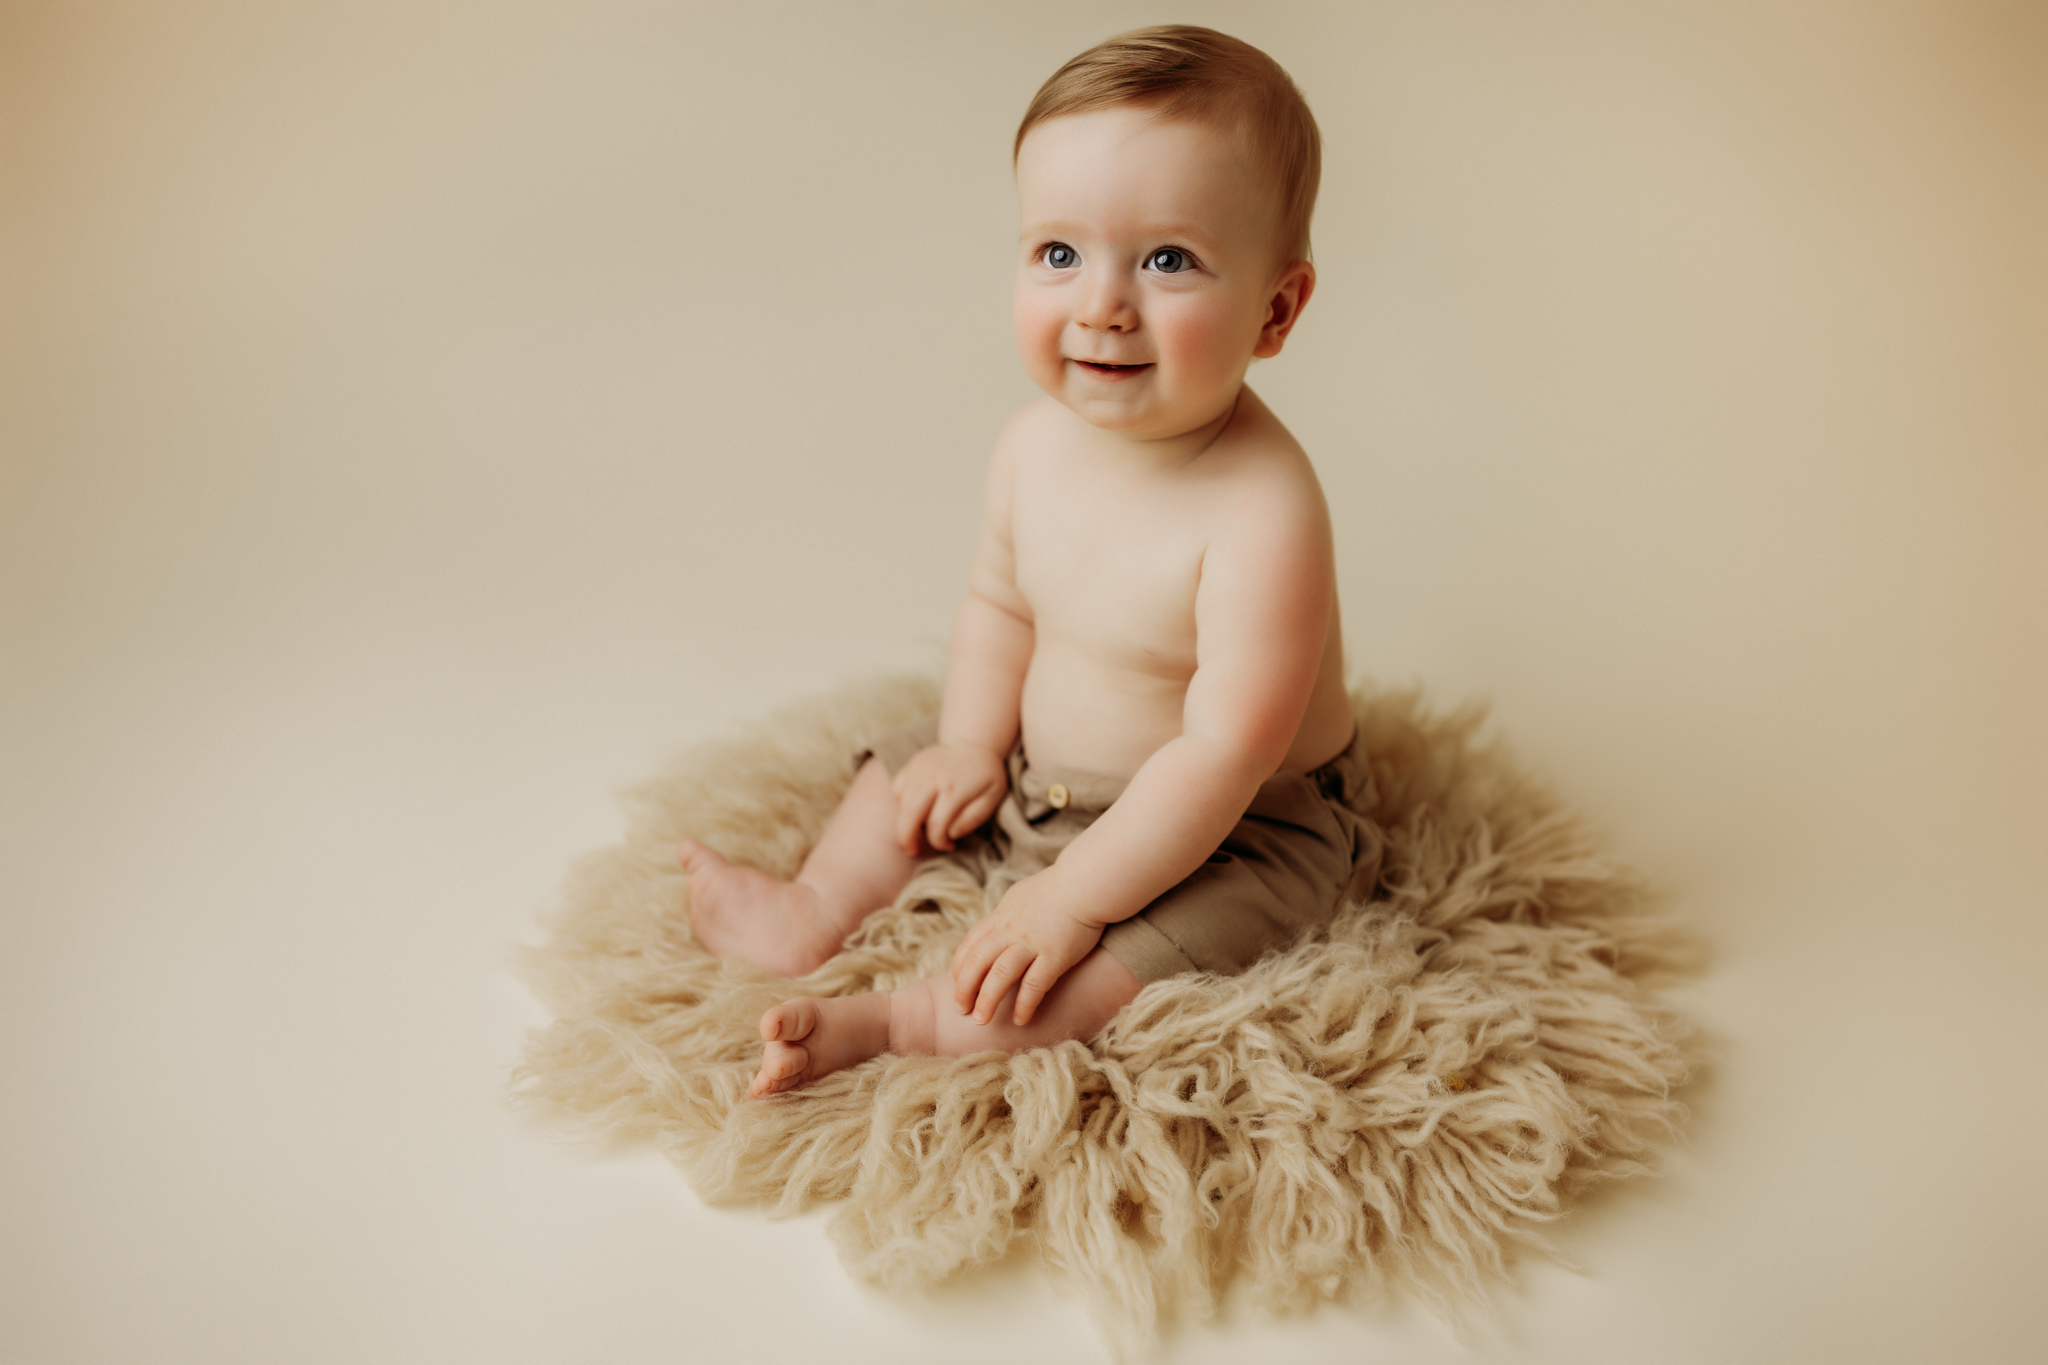 nwa childrens session with baby boy on tan flokati round rug and shorts while smiling